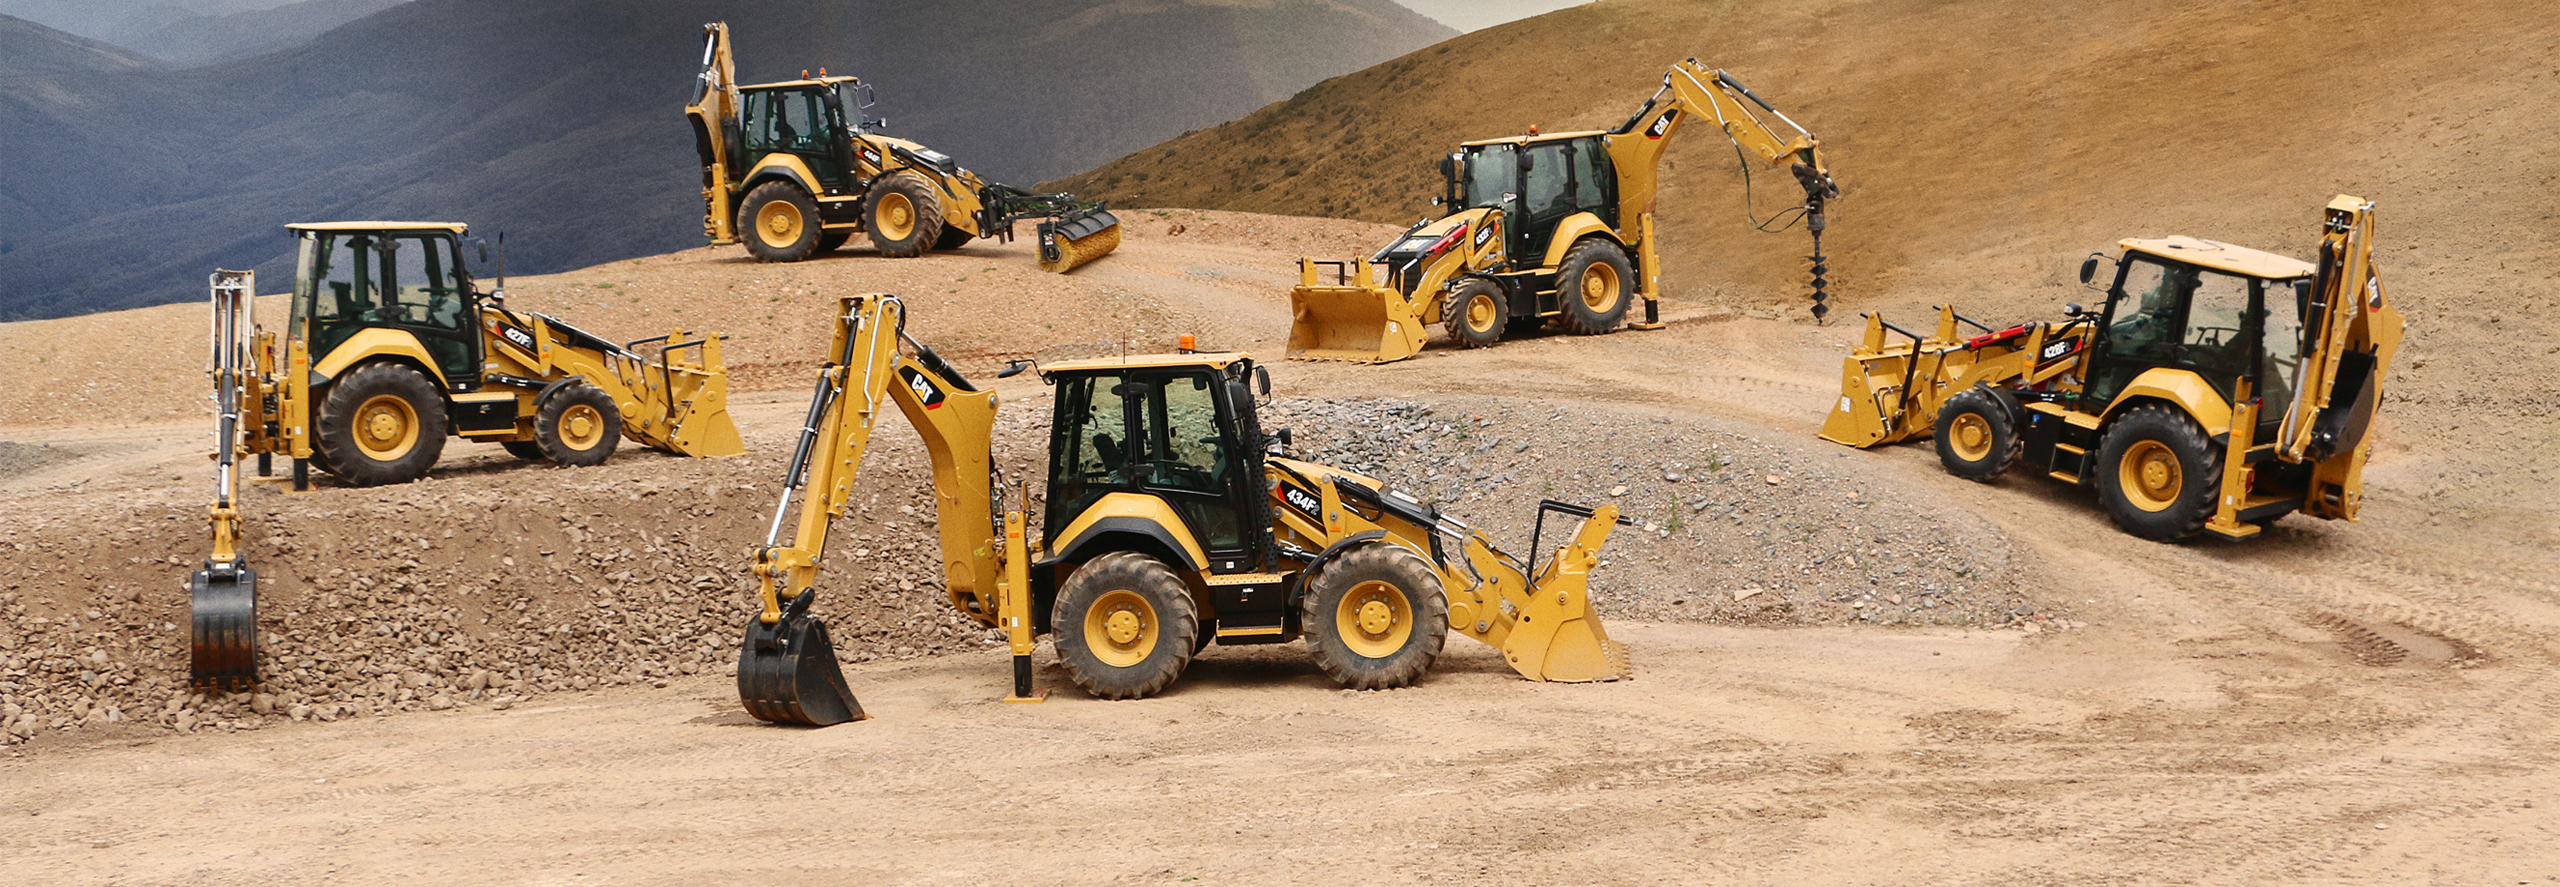 Cat-Backhoe-loaders